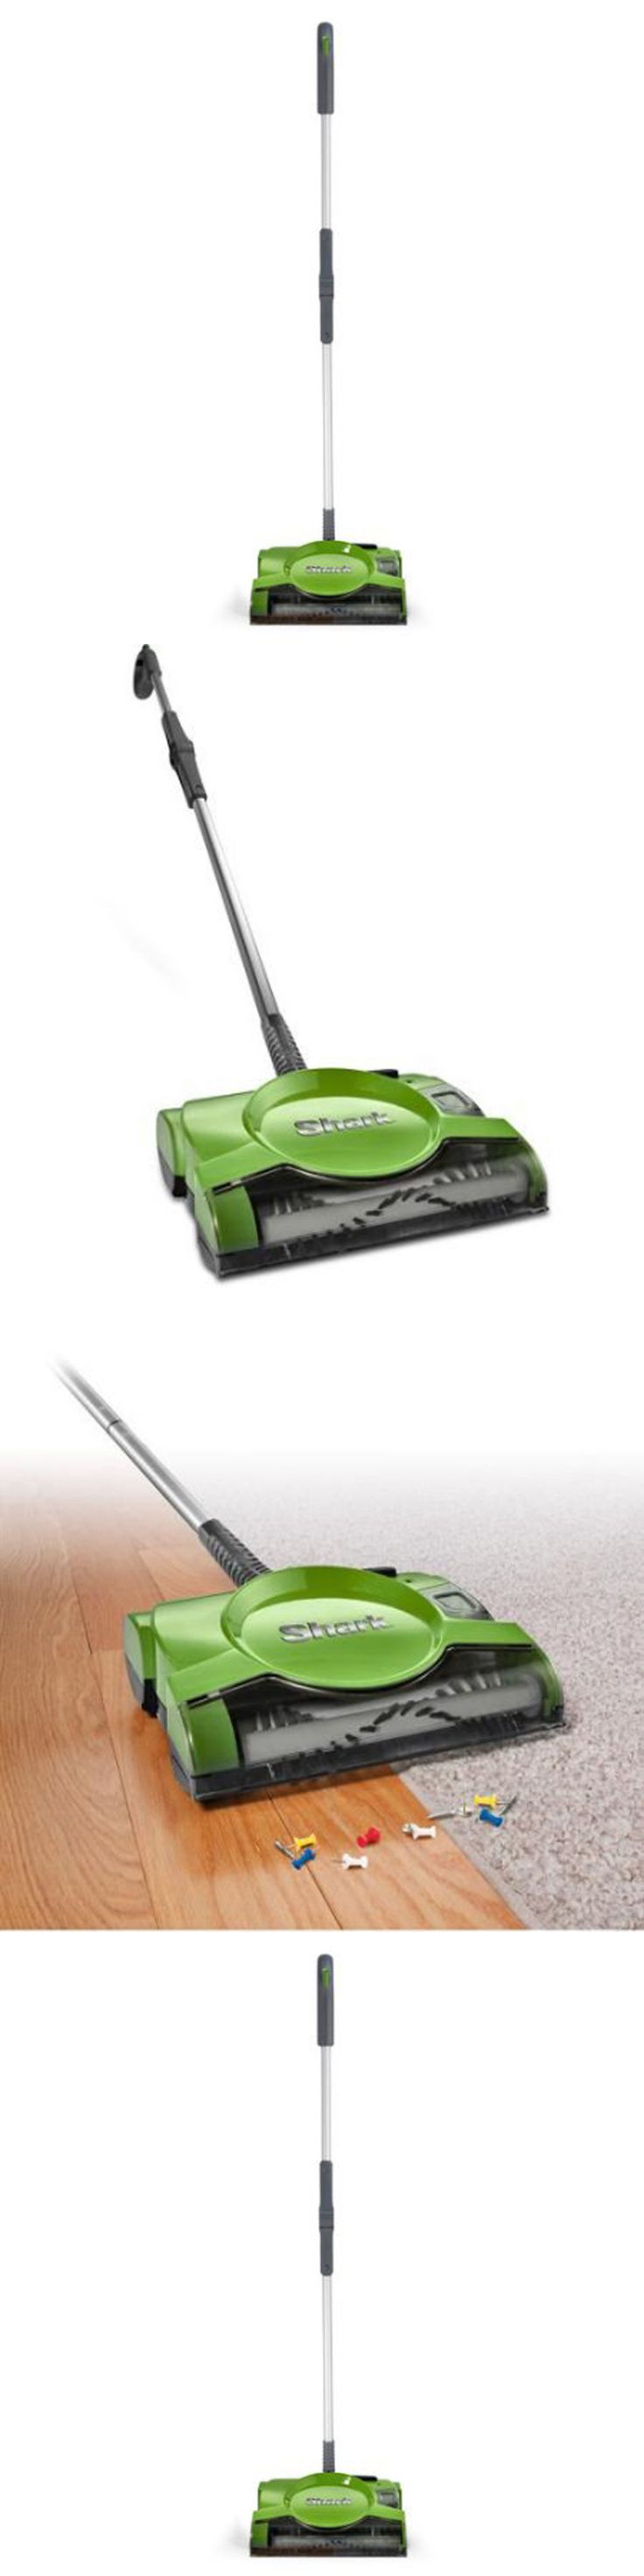 household items: Shark Swivel Cordless Sweeper Vacuum Cleaner Rechargeable Floor Carpet Green New -> BUY IT NOW ONLY: $49.97 on eBay!